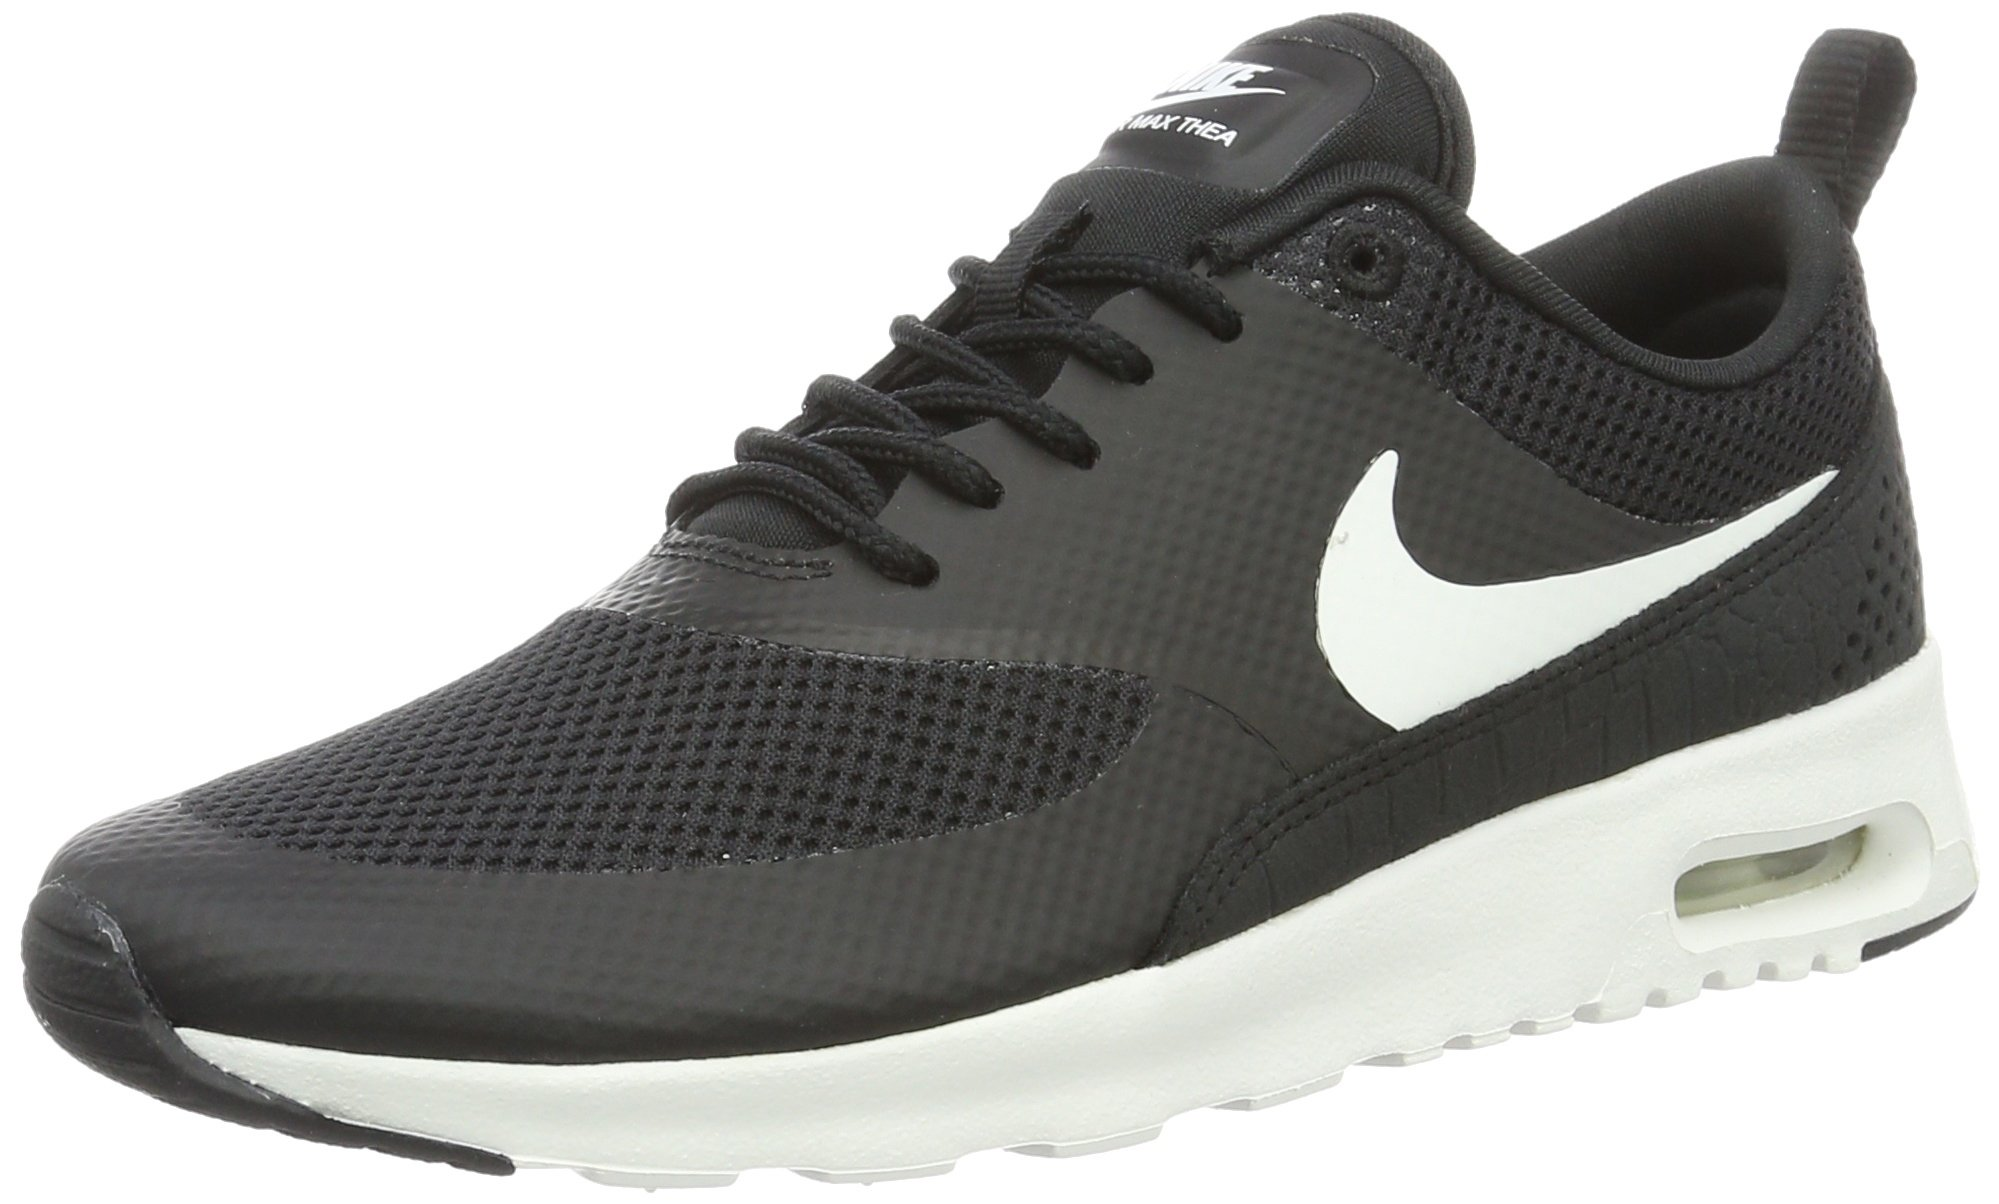 promo code 84ab5 bd093 Galleon - Nike Womens Air Max Thea Low Top Lace Up Running, BlackSummit  White, Size 8.0